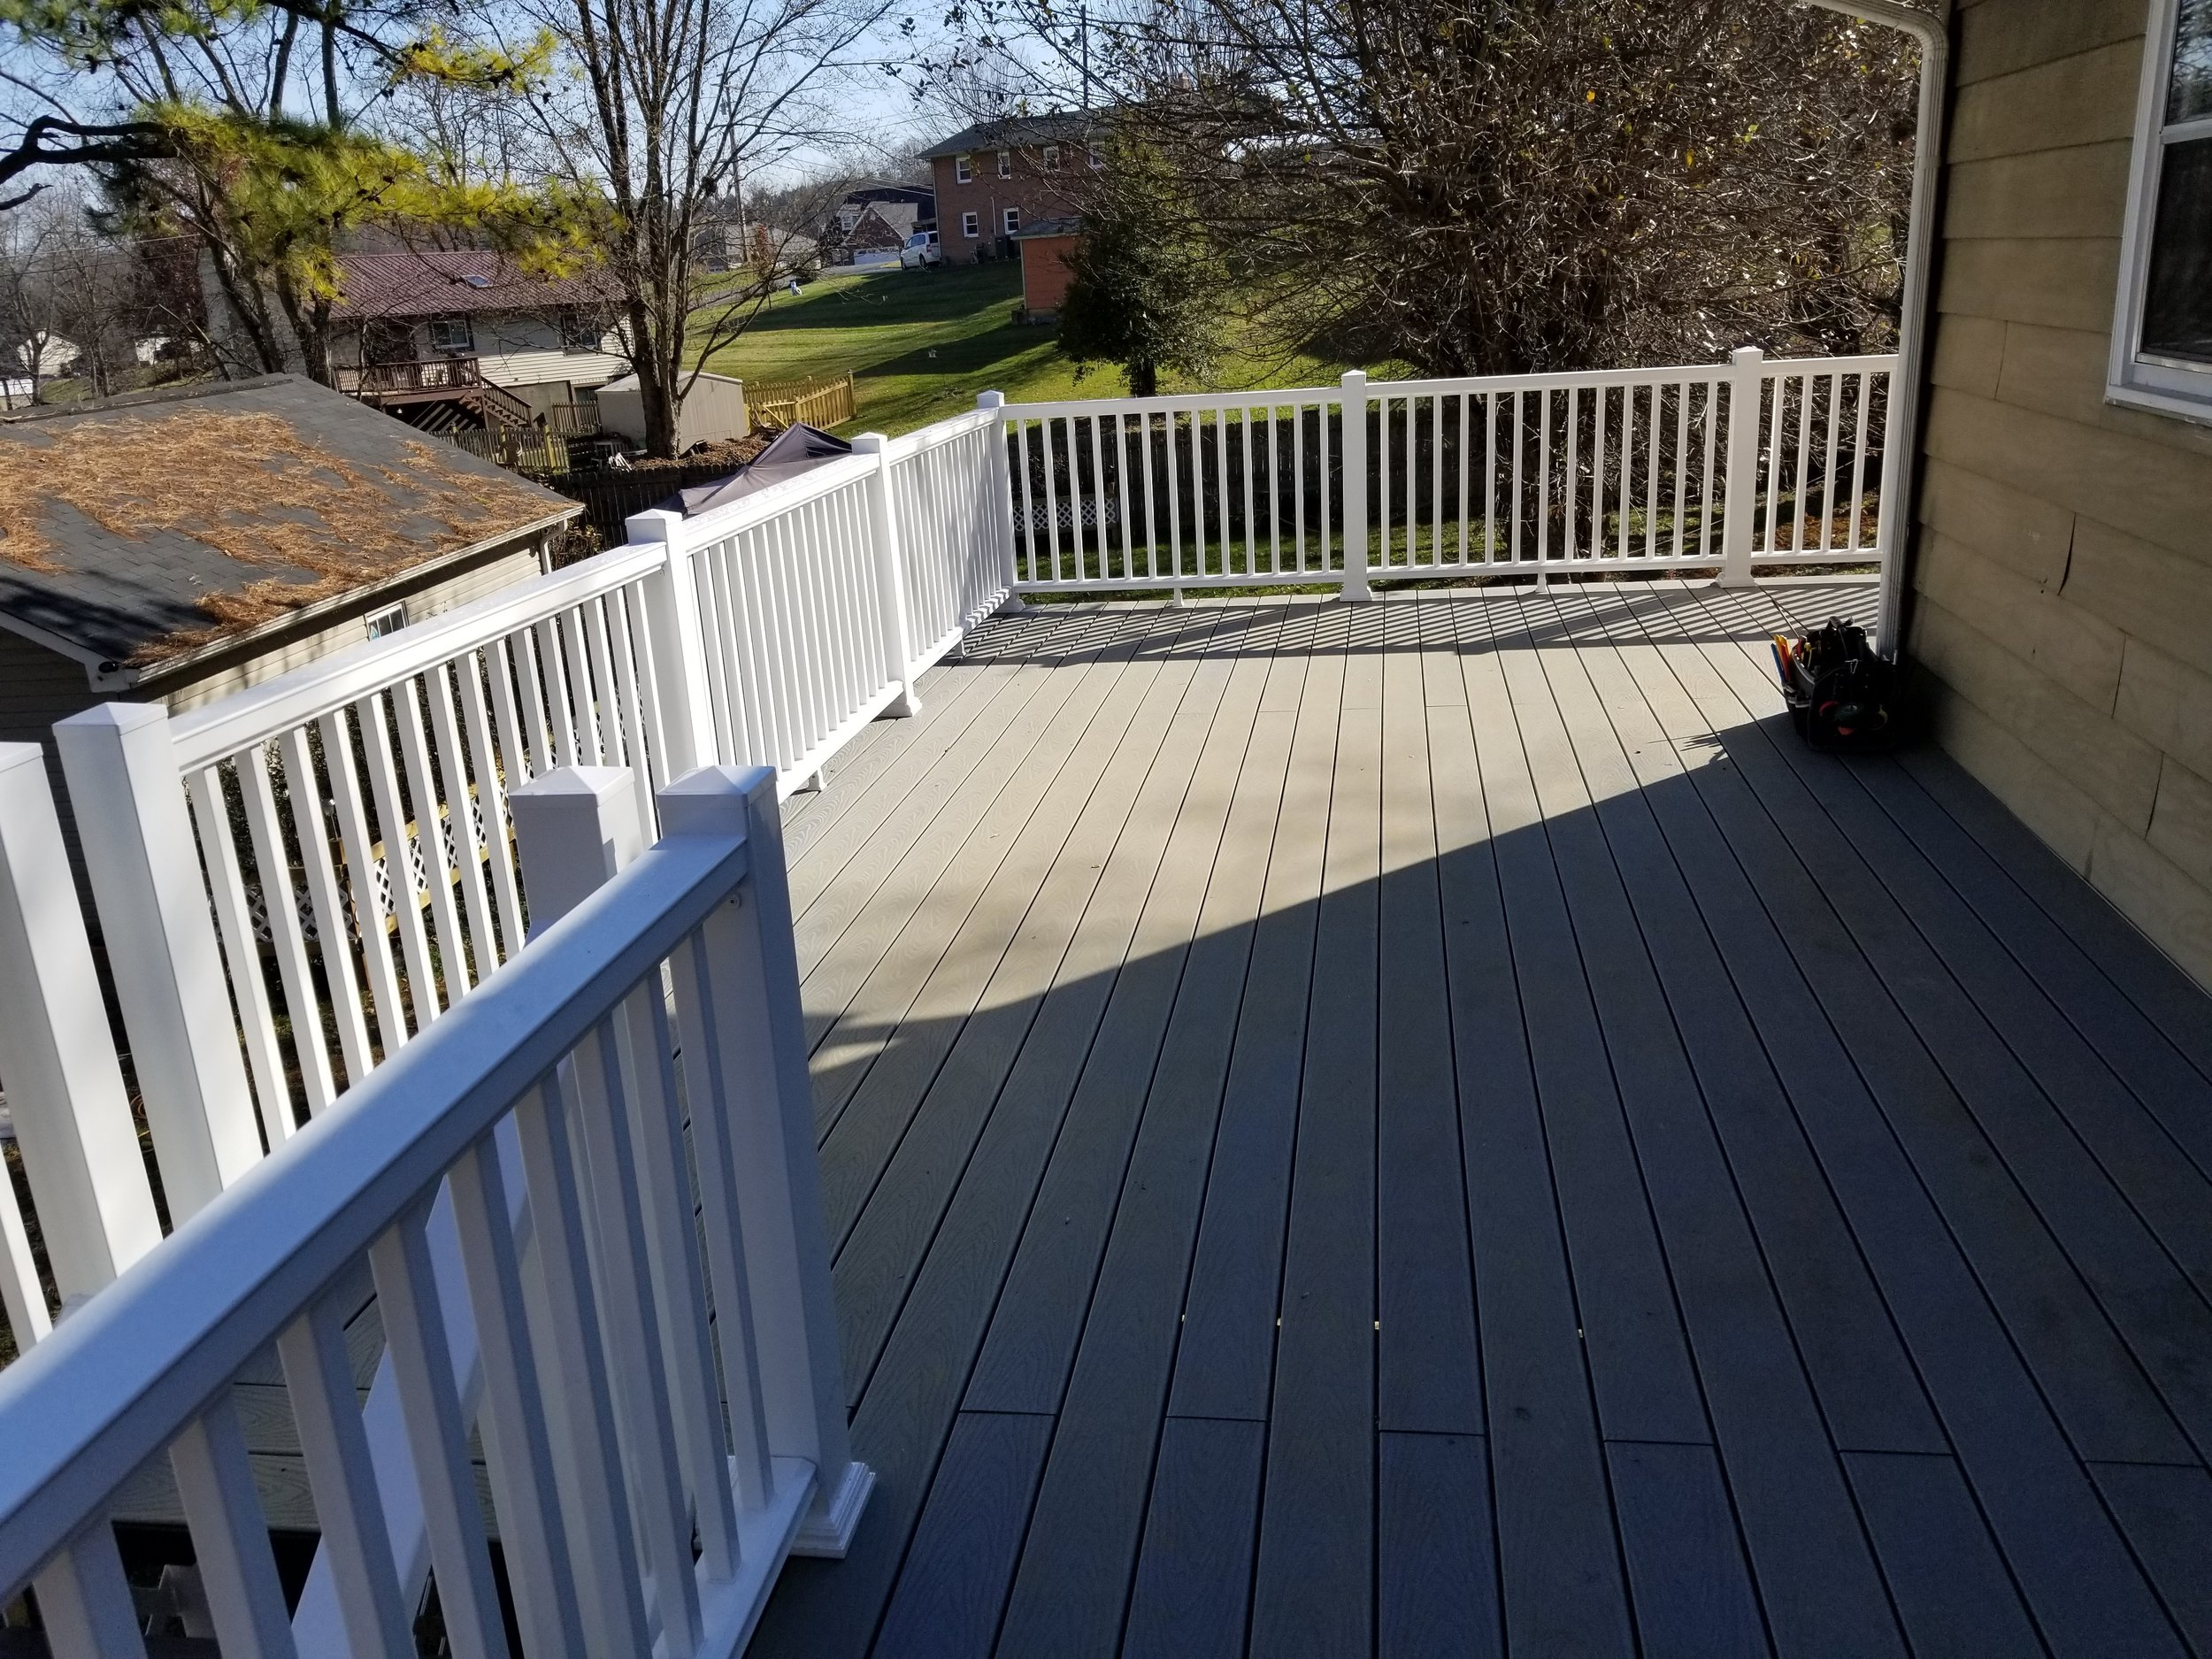 New Composite Trex Deck 600 Sq. Feet (Piney Flats, Tn)